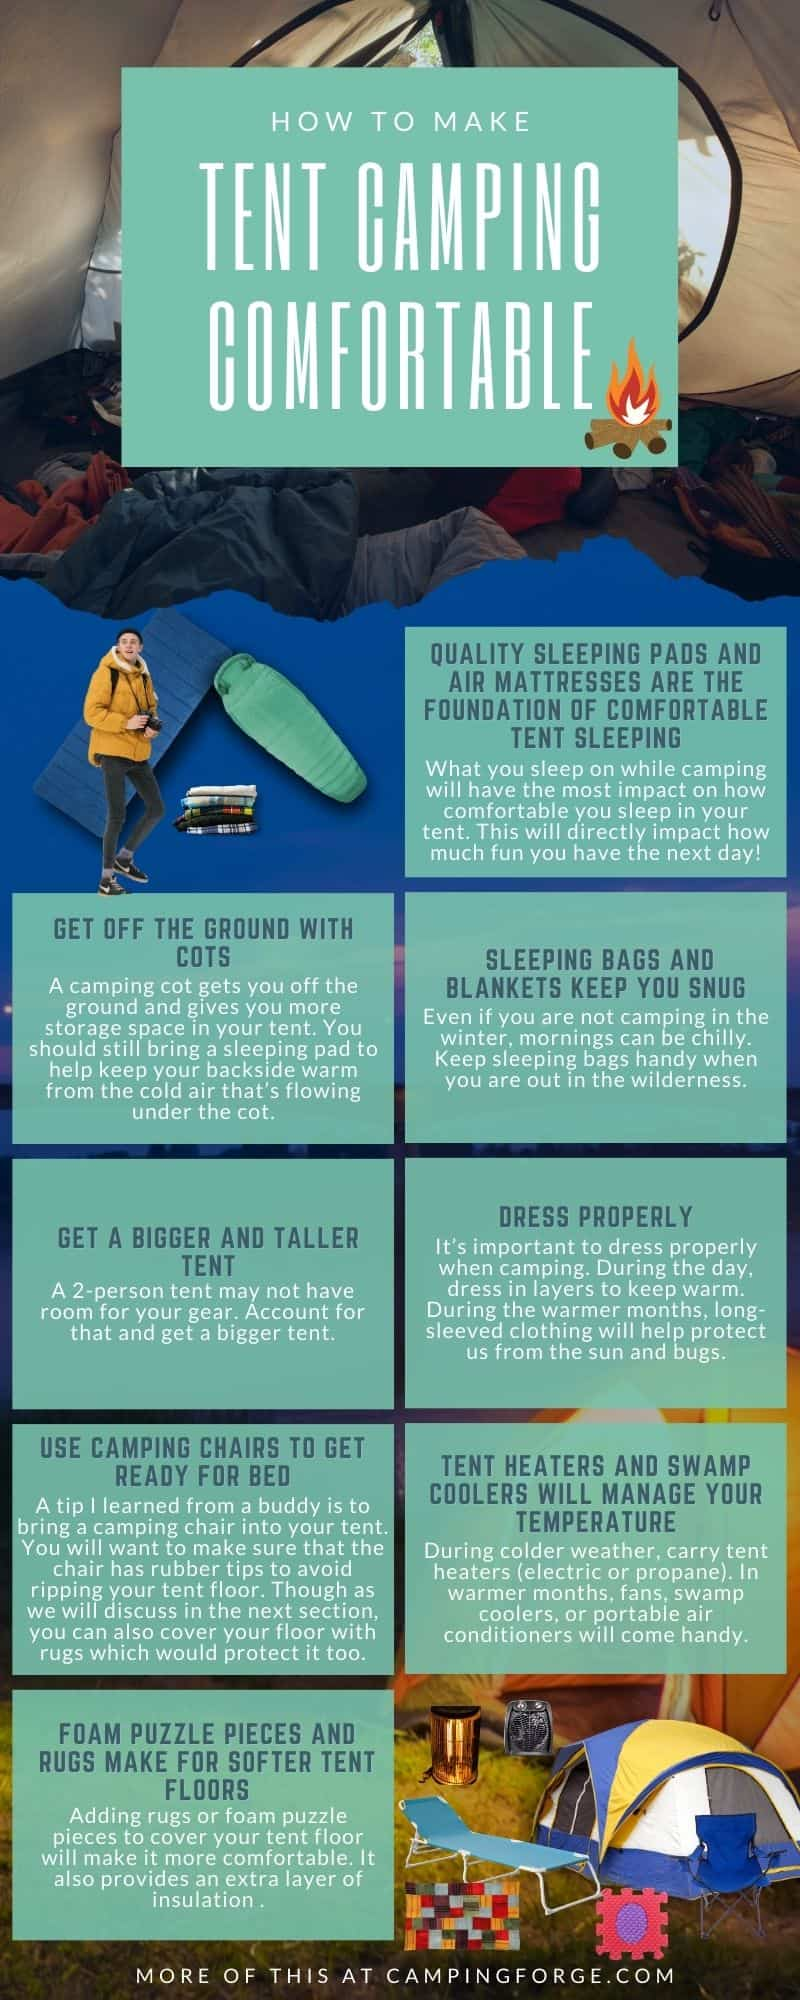 Infographic on how to make tent camping comfortable